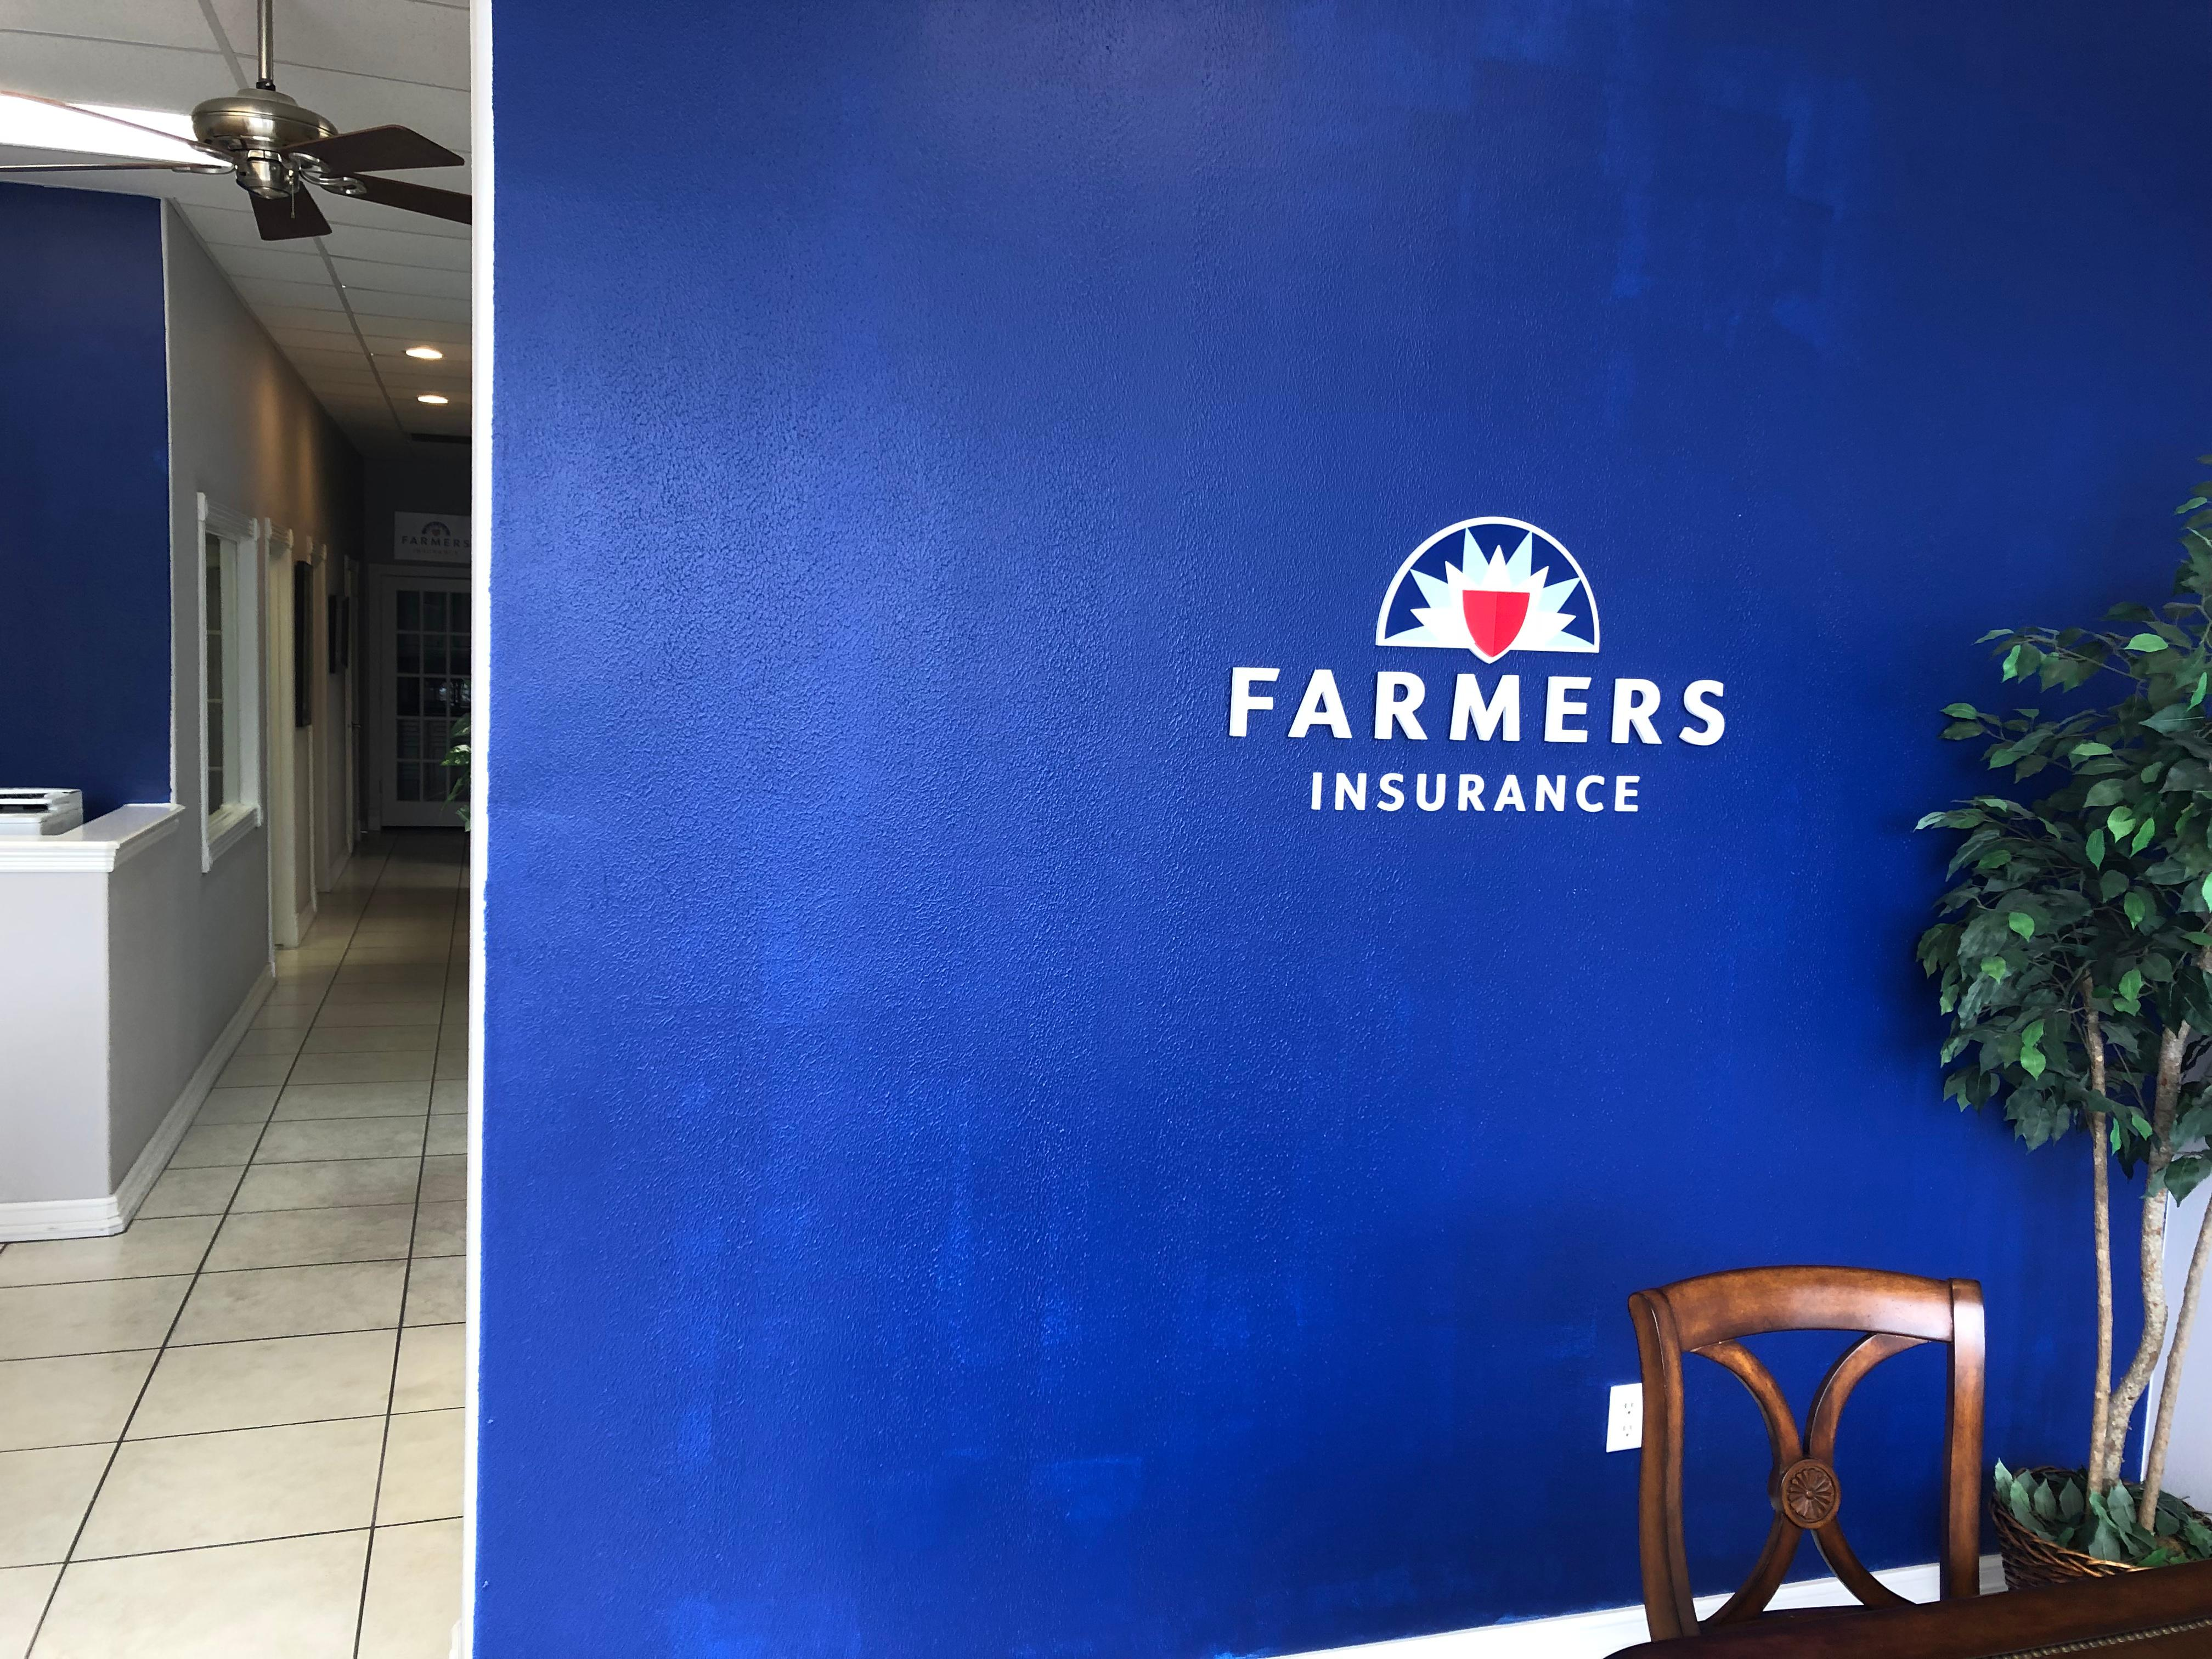 Farmers Insurance - Isaac White image 0